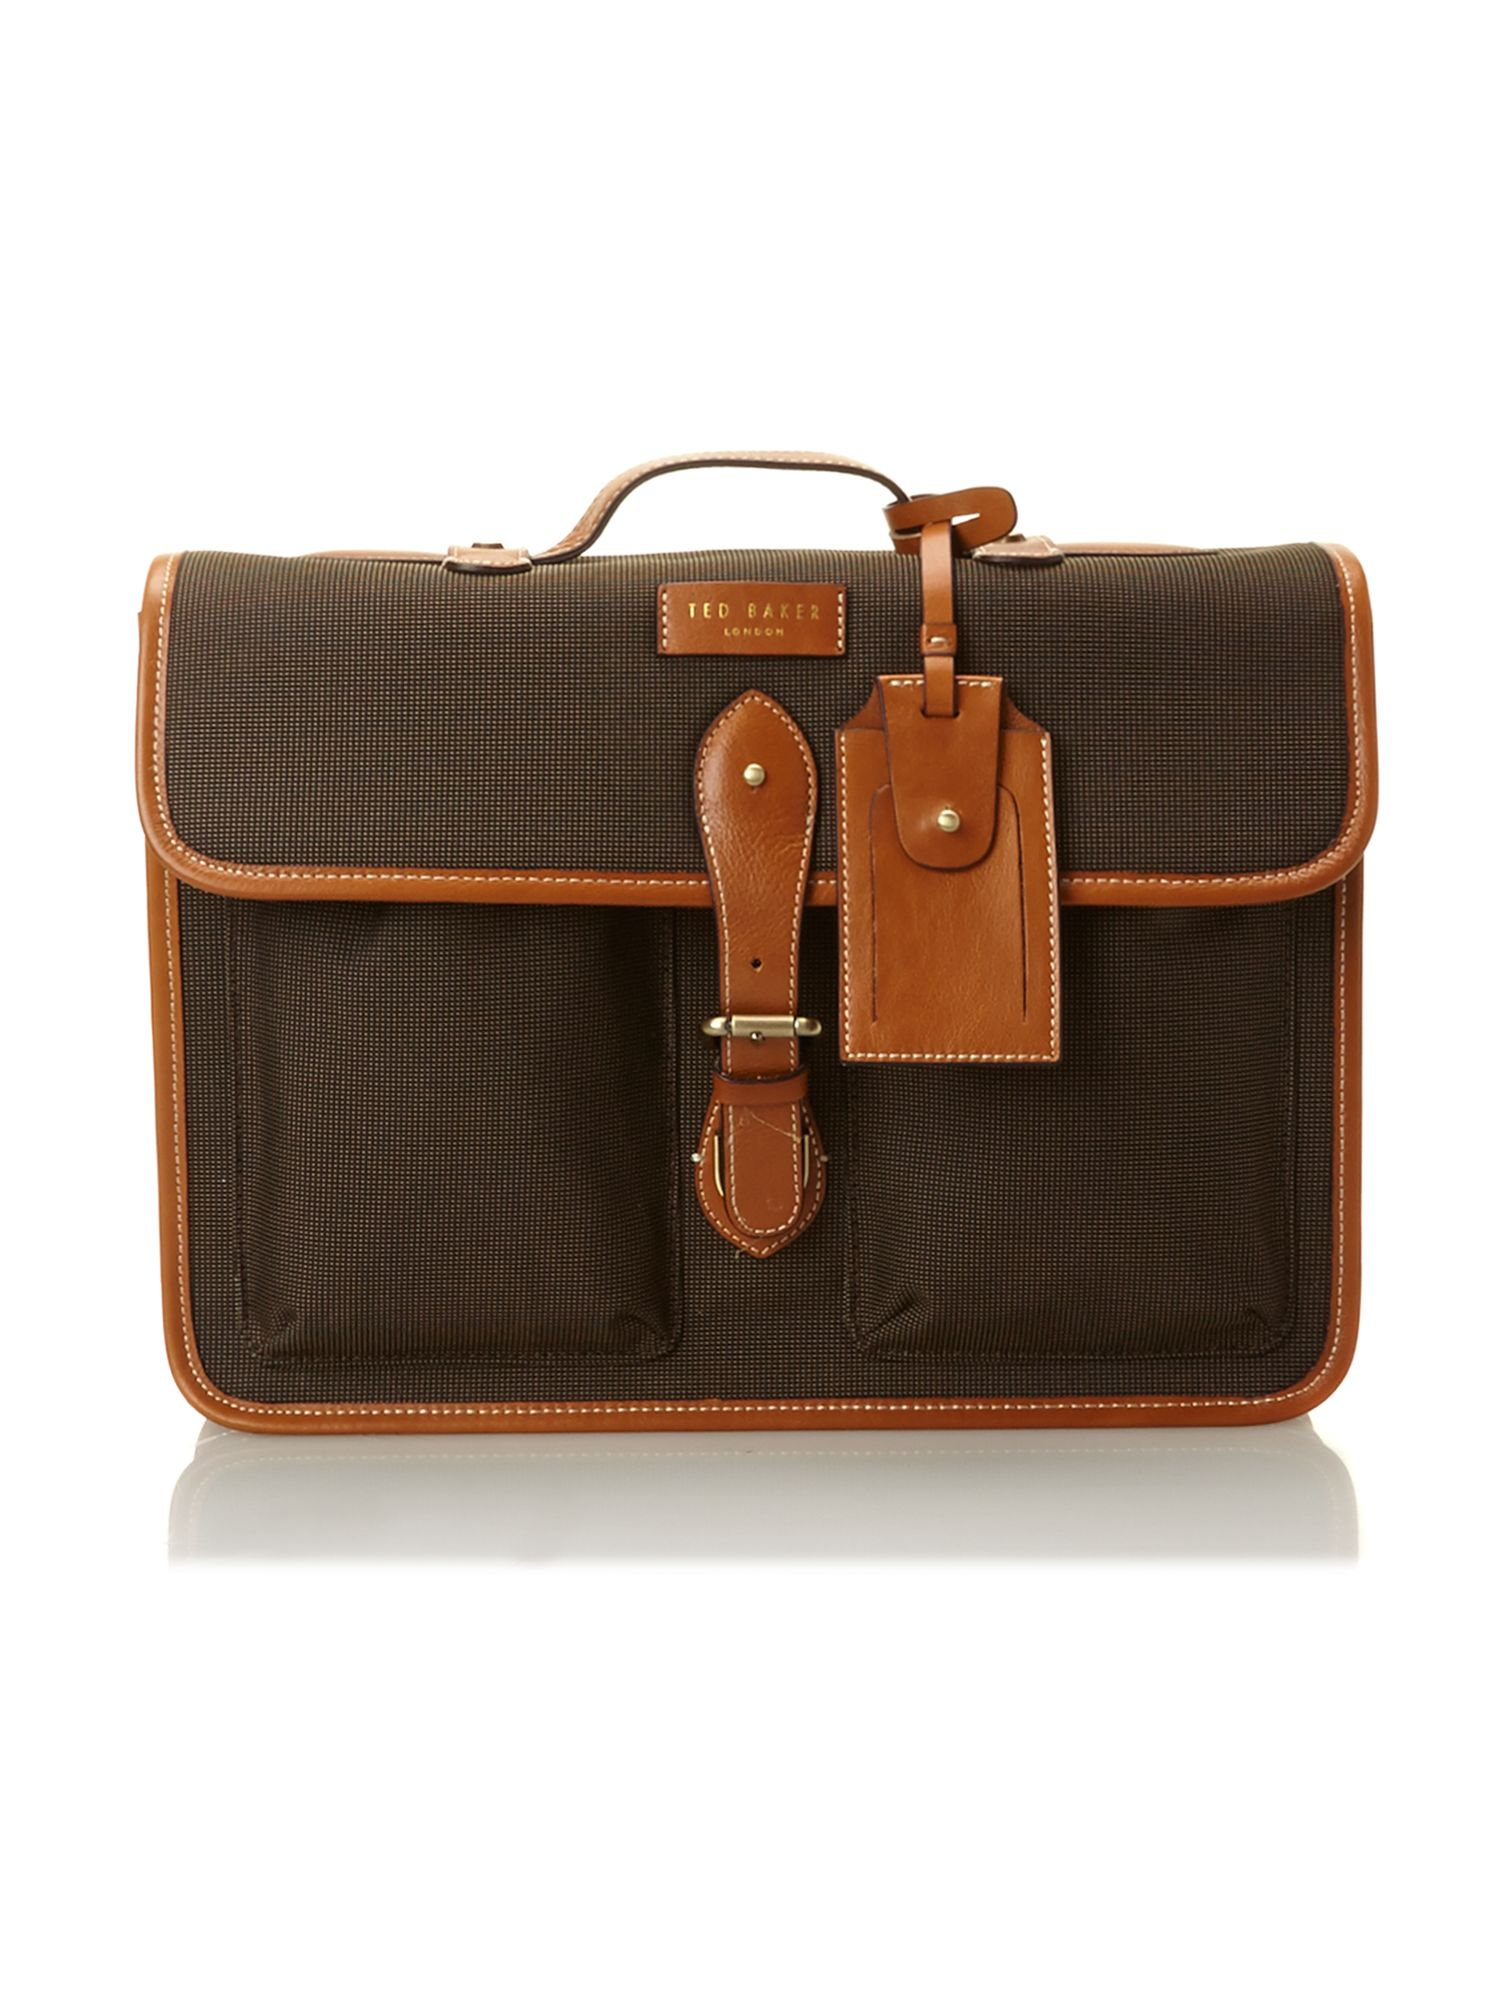 Nylon and leather satchel bag